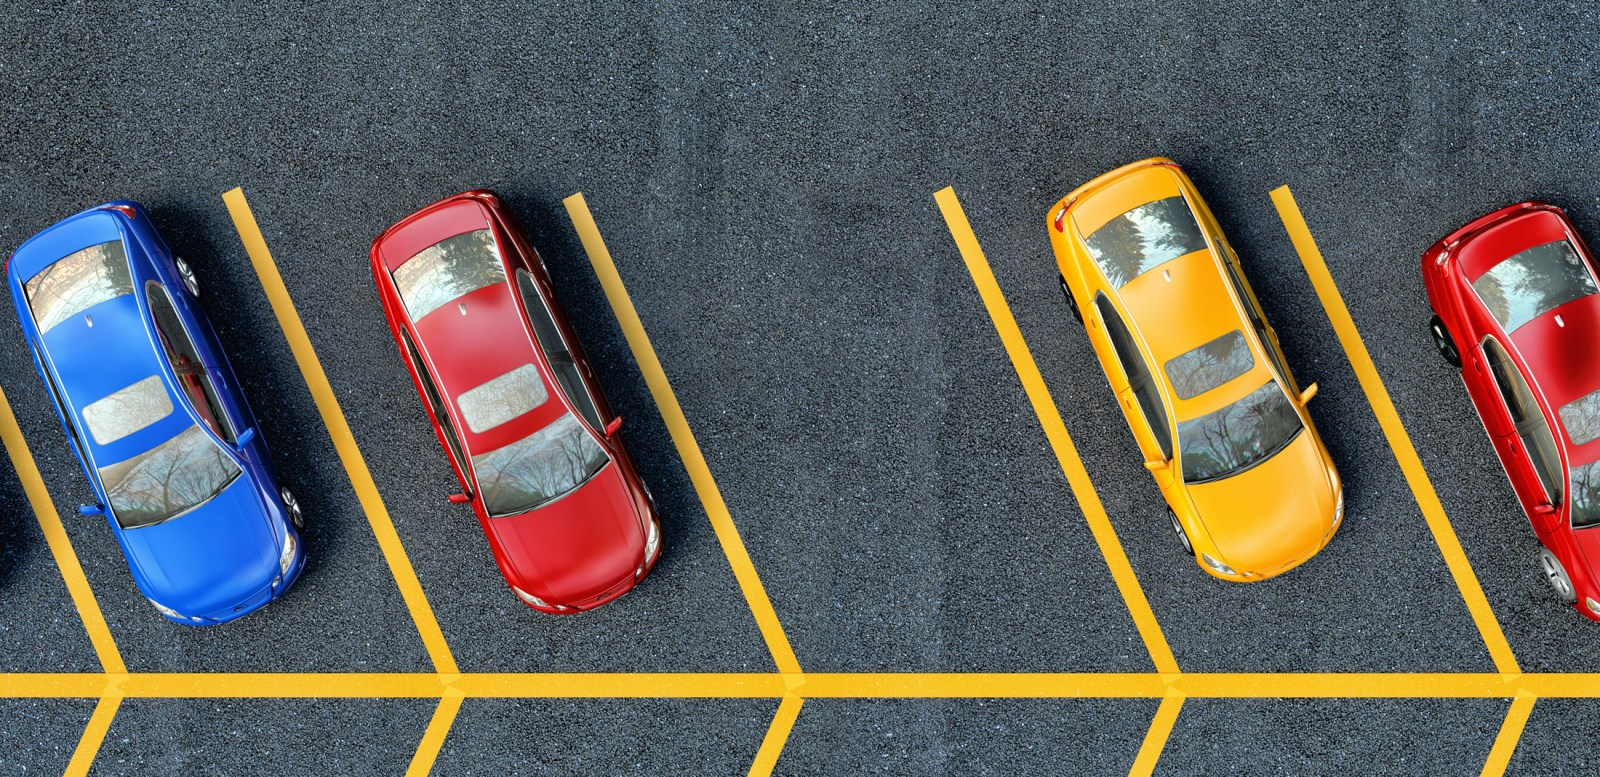 Top-down view of a free parking space